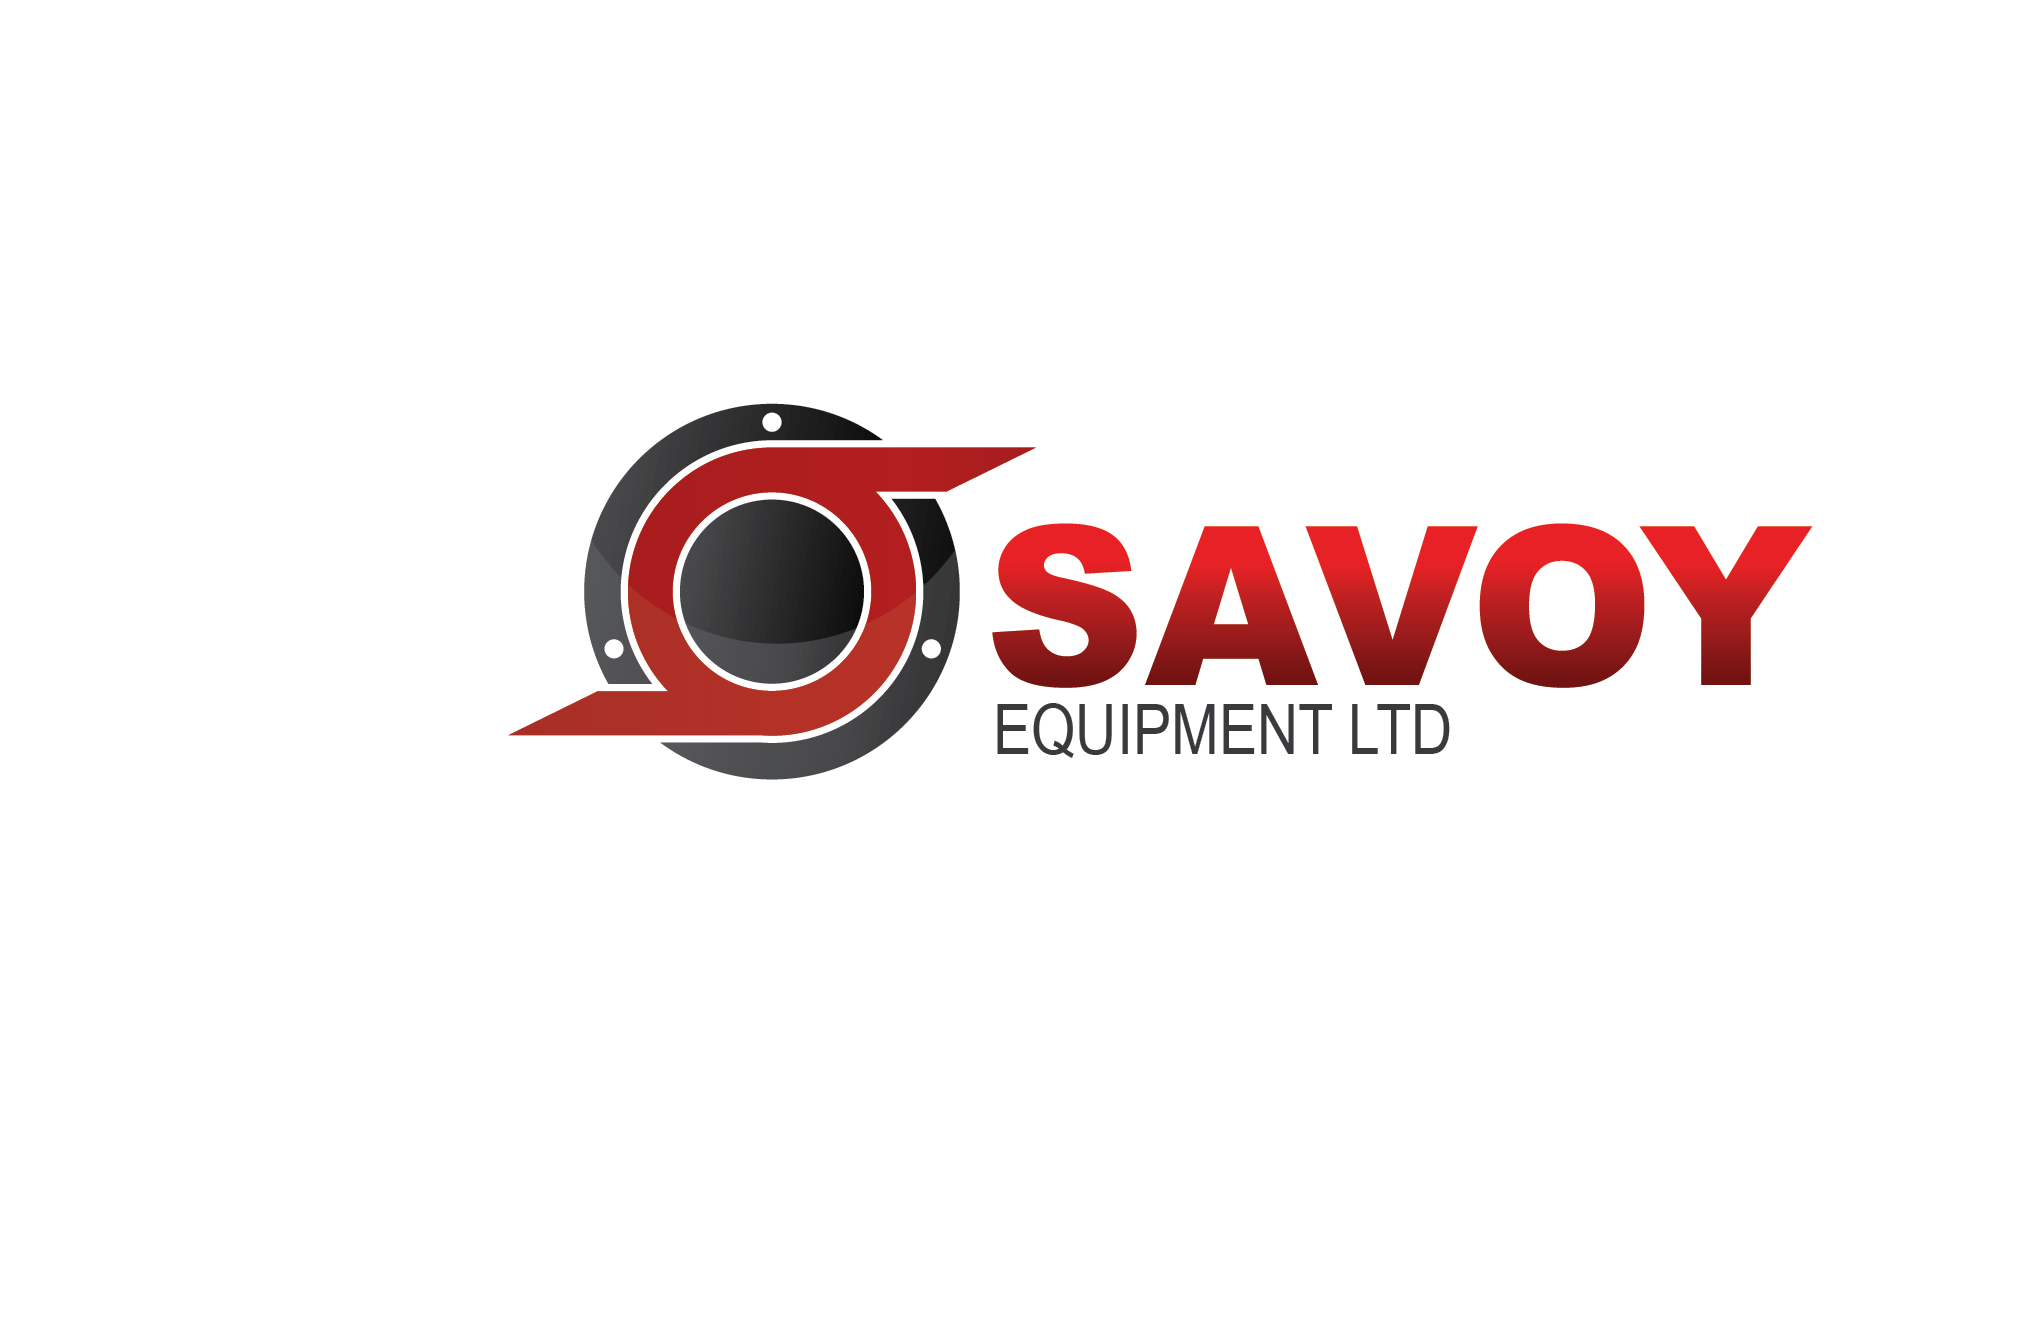 Logo Design by Jesus Emmanuel GAbriel - Entry No. 17 in the Logo Design Contest Inspiring Logo Design for Savoy Equipment Ltd..